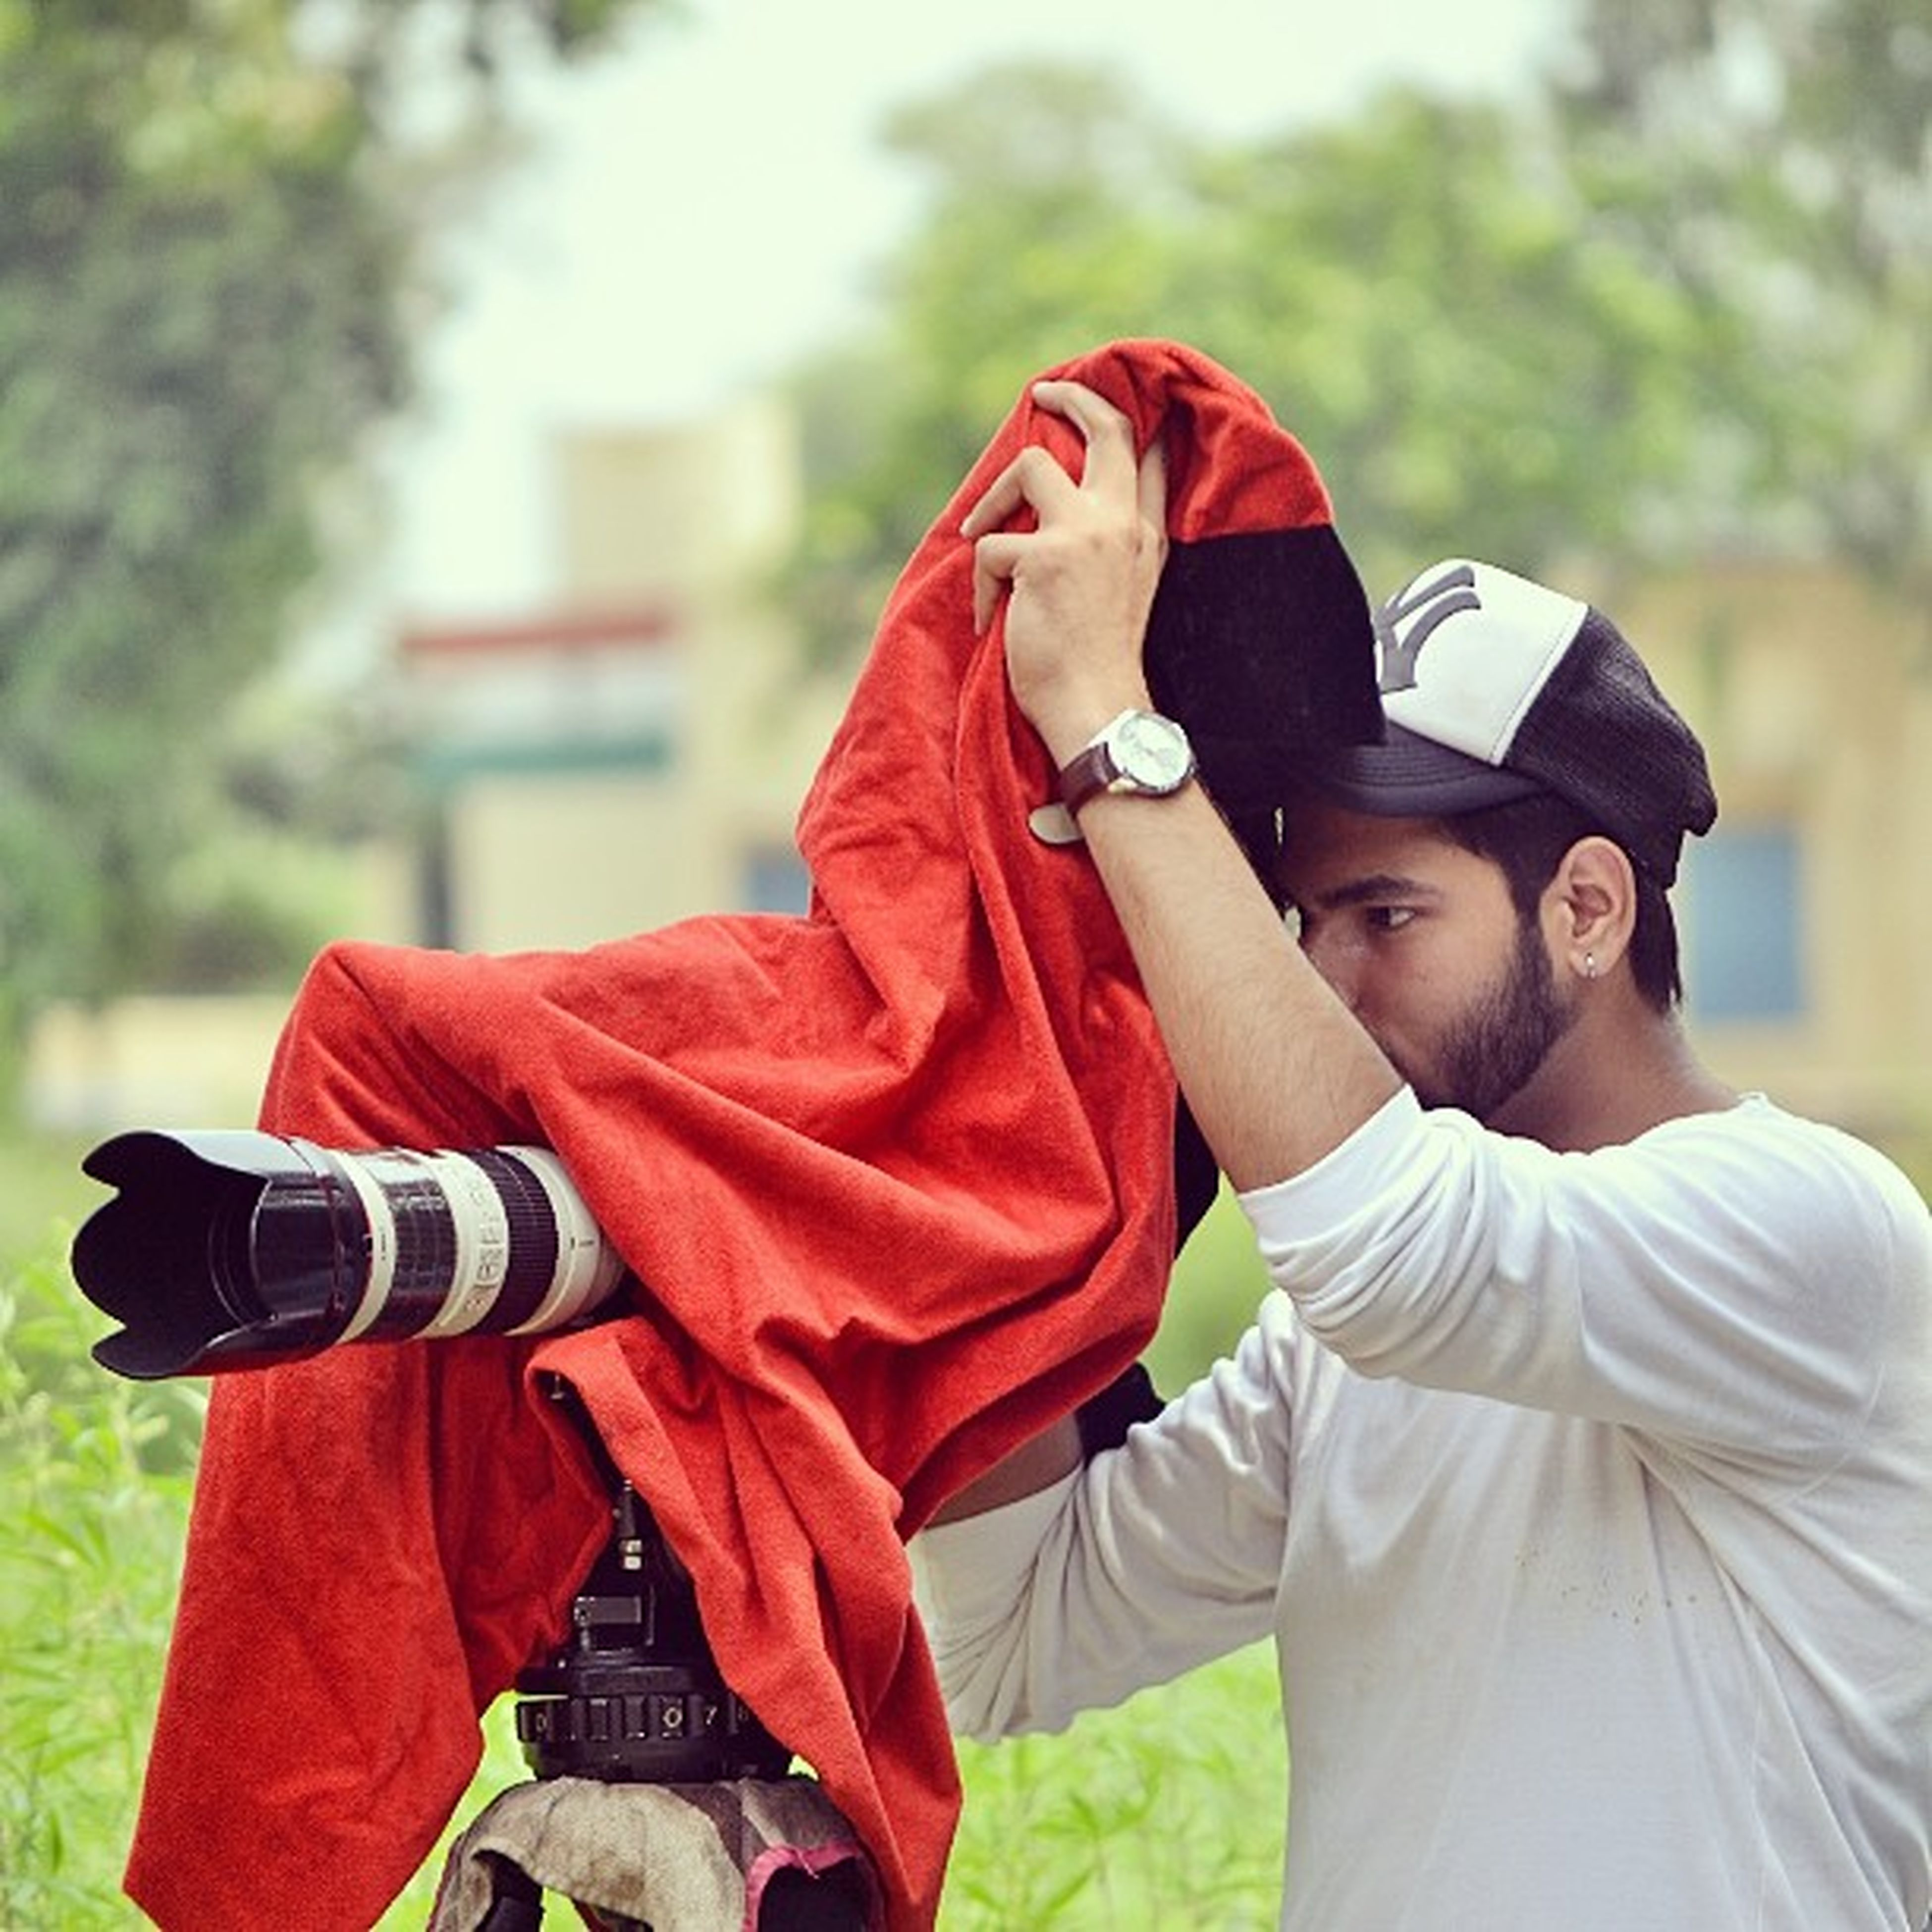 lifestyles, casual clothing, focus on foreground, person, leisure activity, young adult, front view, warm clothing, portrait, jacket, looking at camera, red, smiling, three quarter length, holding, young men, hood - clothing, waist up